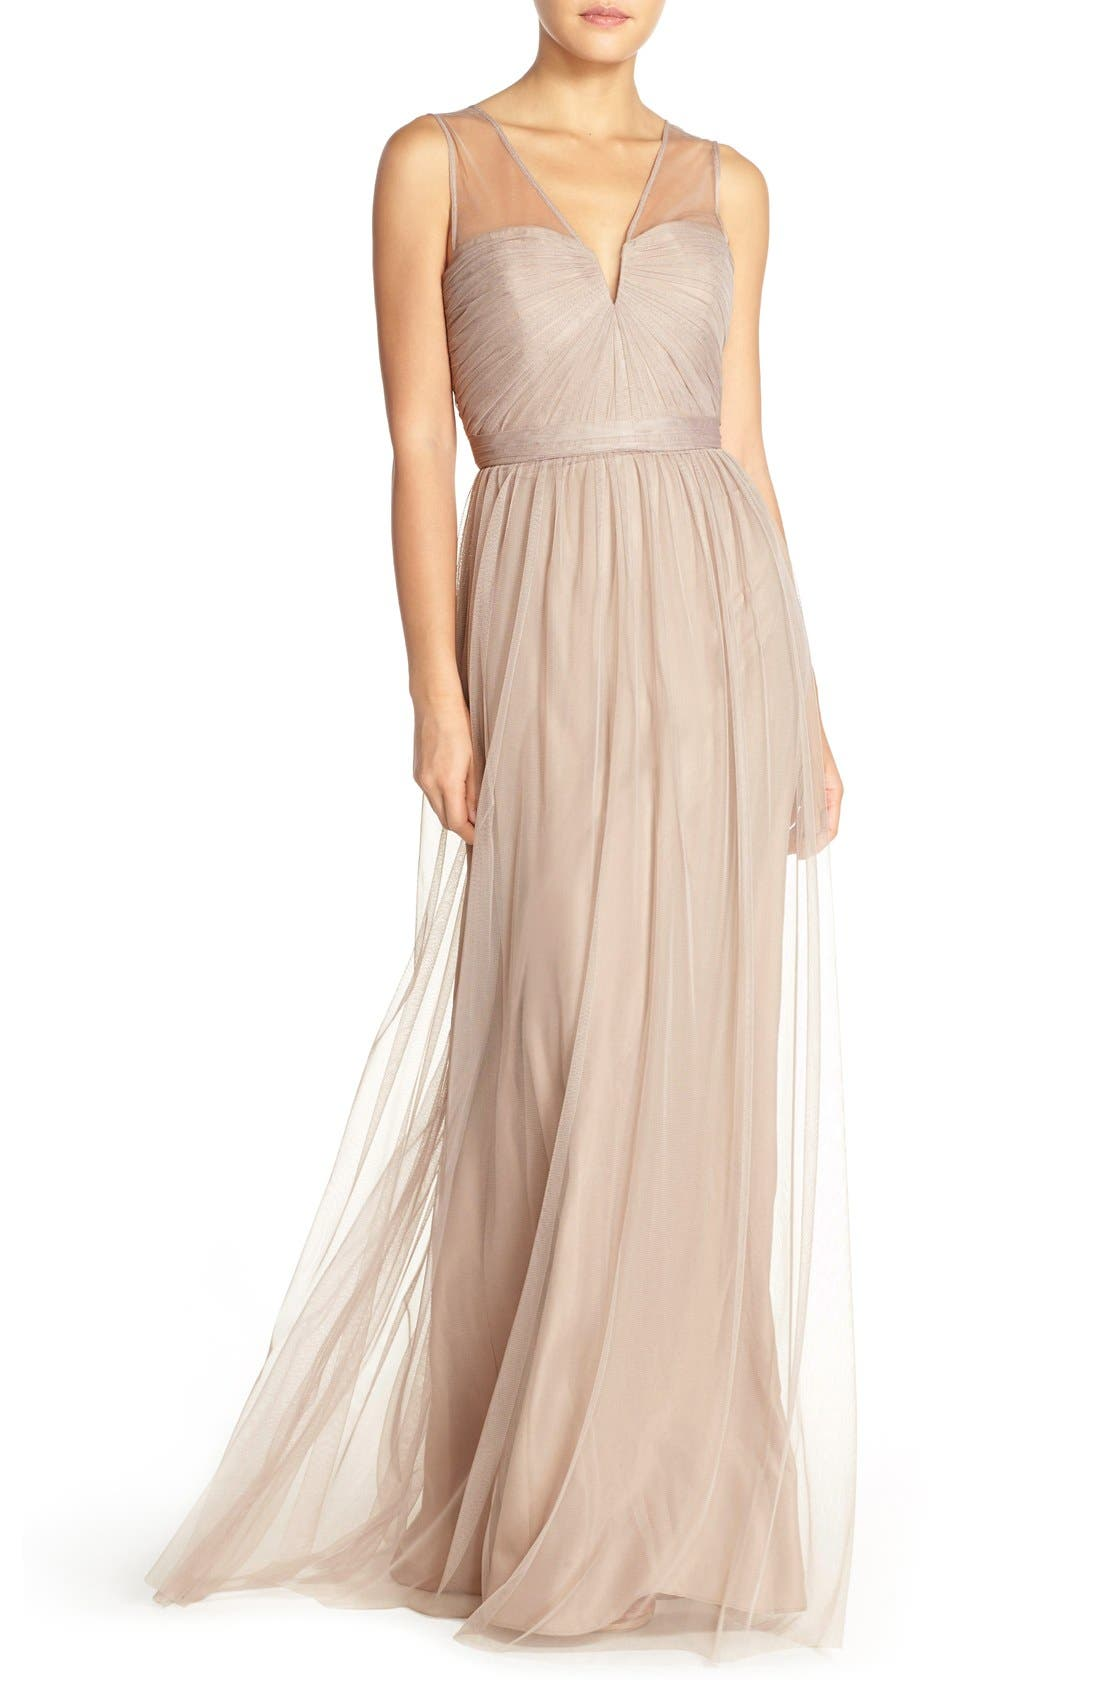 Alternate Image 1 Selected - Amsale 'Alyce' Illusion V-Neck Pleat Tulle Gown